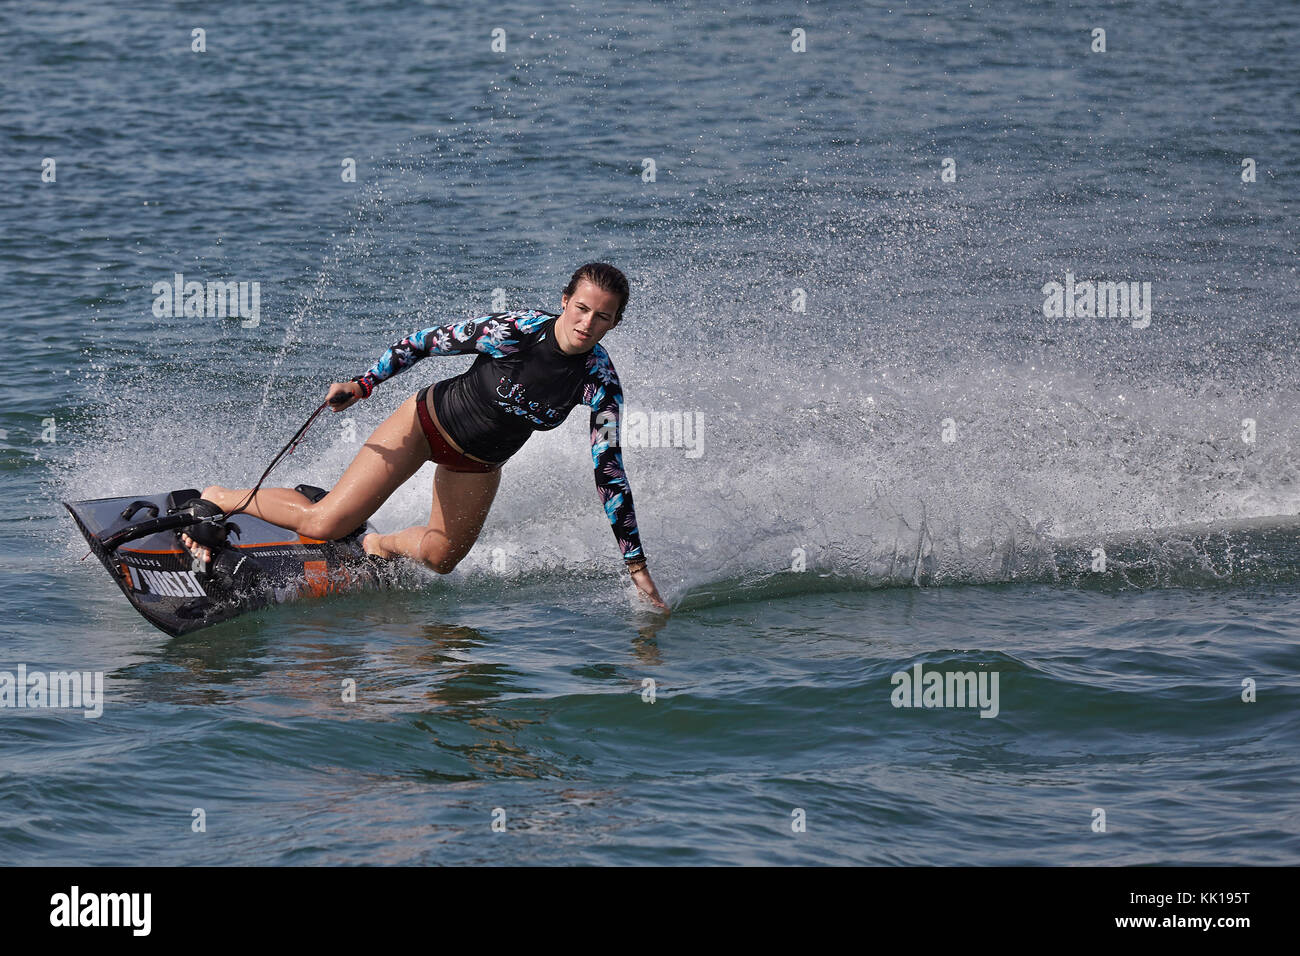 Aneta Šacherová, Czech Republic 2016 World Jetsurf Champion. - Stock Image